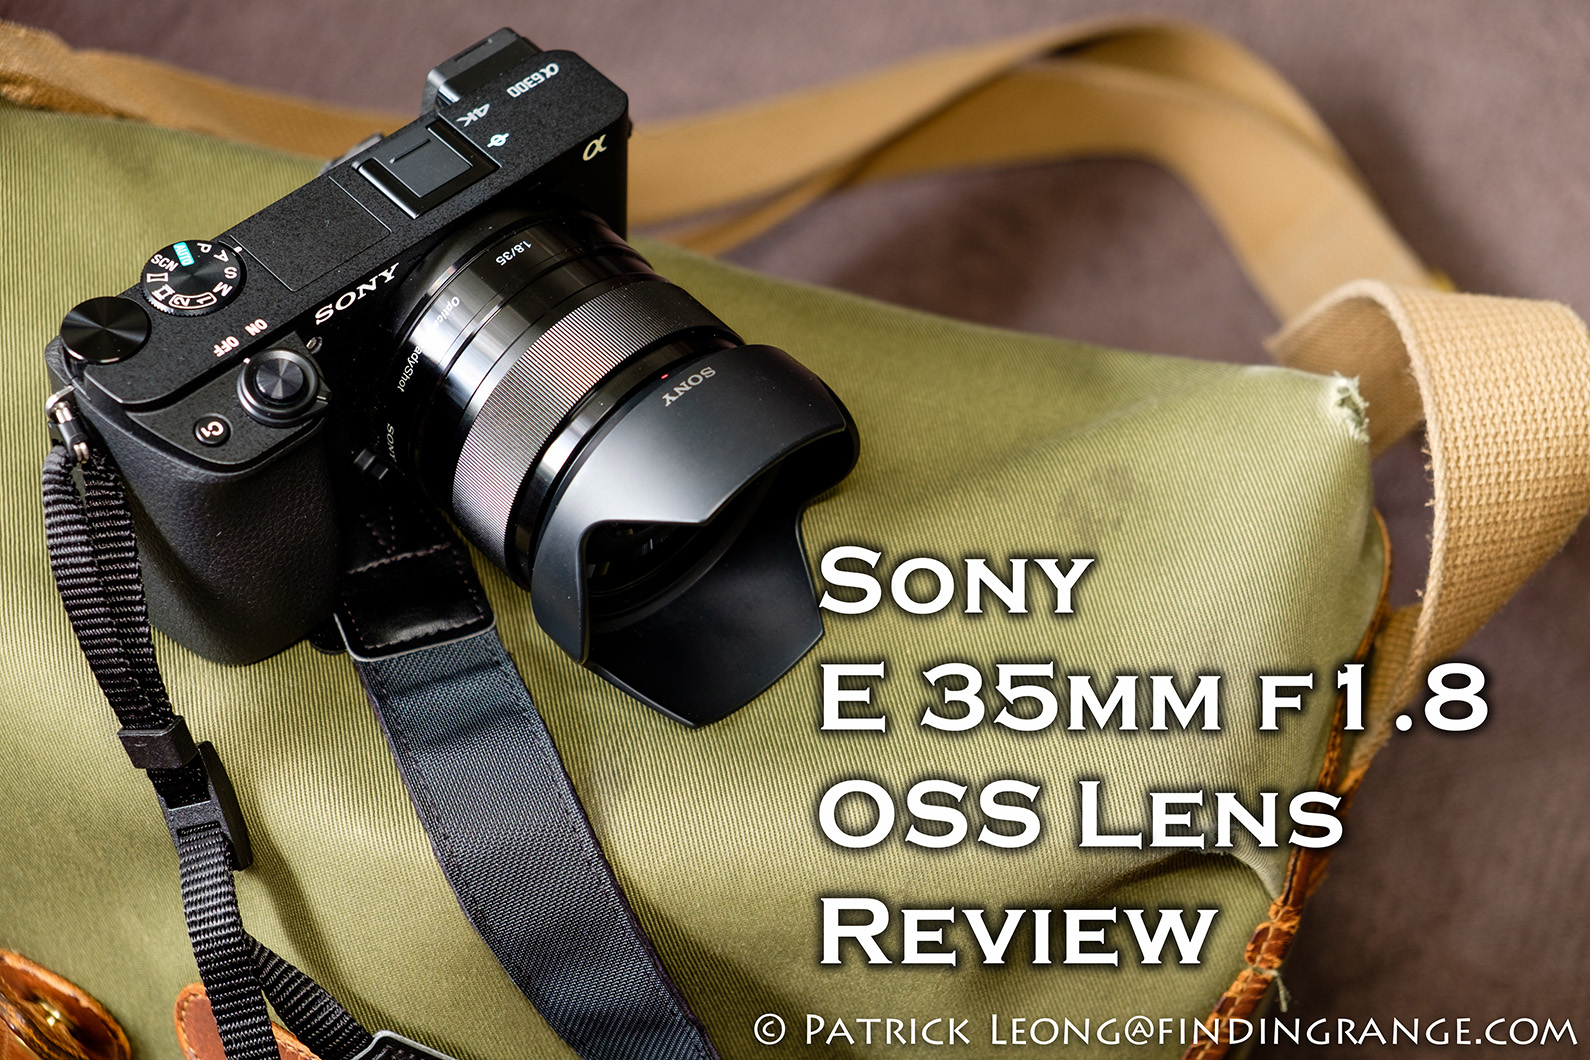 Sony-E-35mm-f1.8-OSS-Lens-Review-1